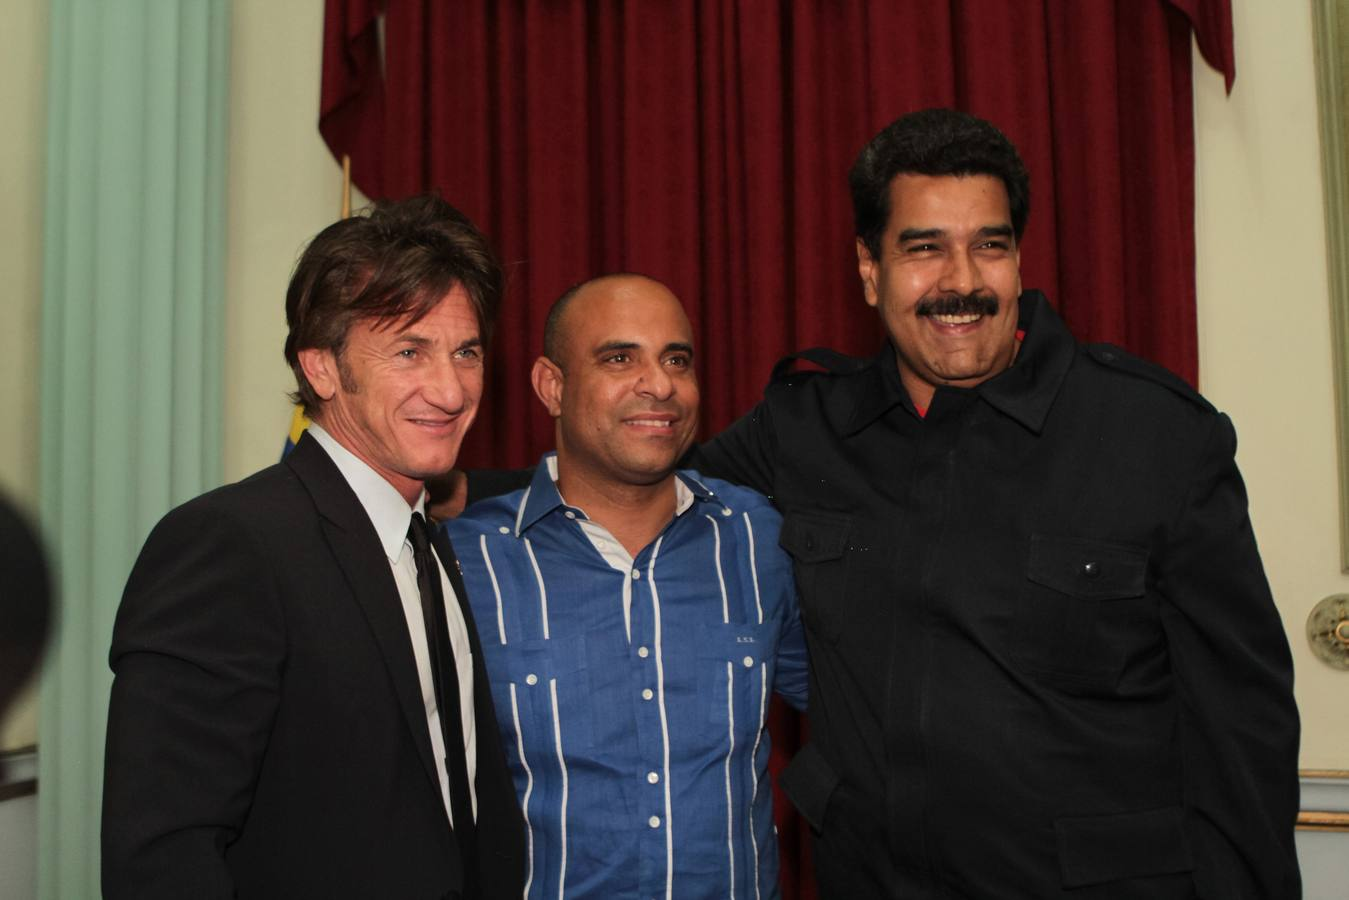 Venezuela's President Maduro poses for a picture with actor Penn and Haiti's PM Lamothe as they visit him at Miraflores Palace in Caracas